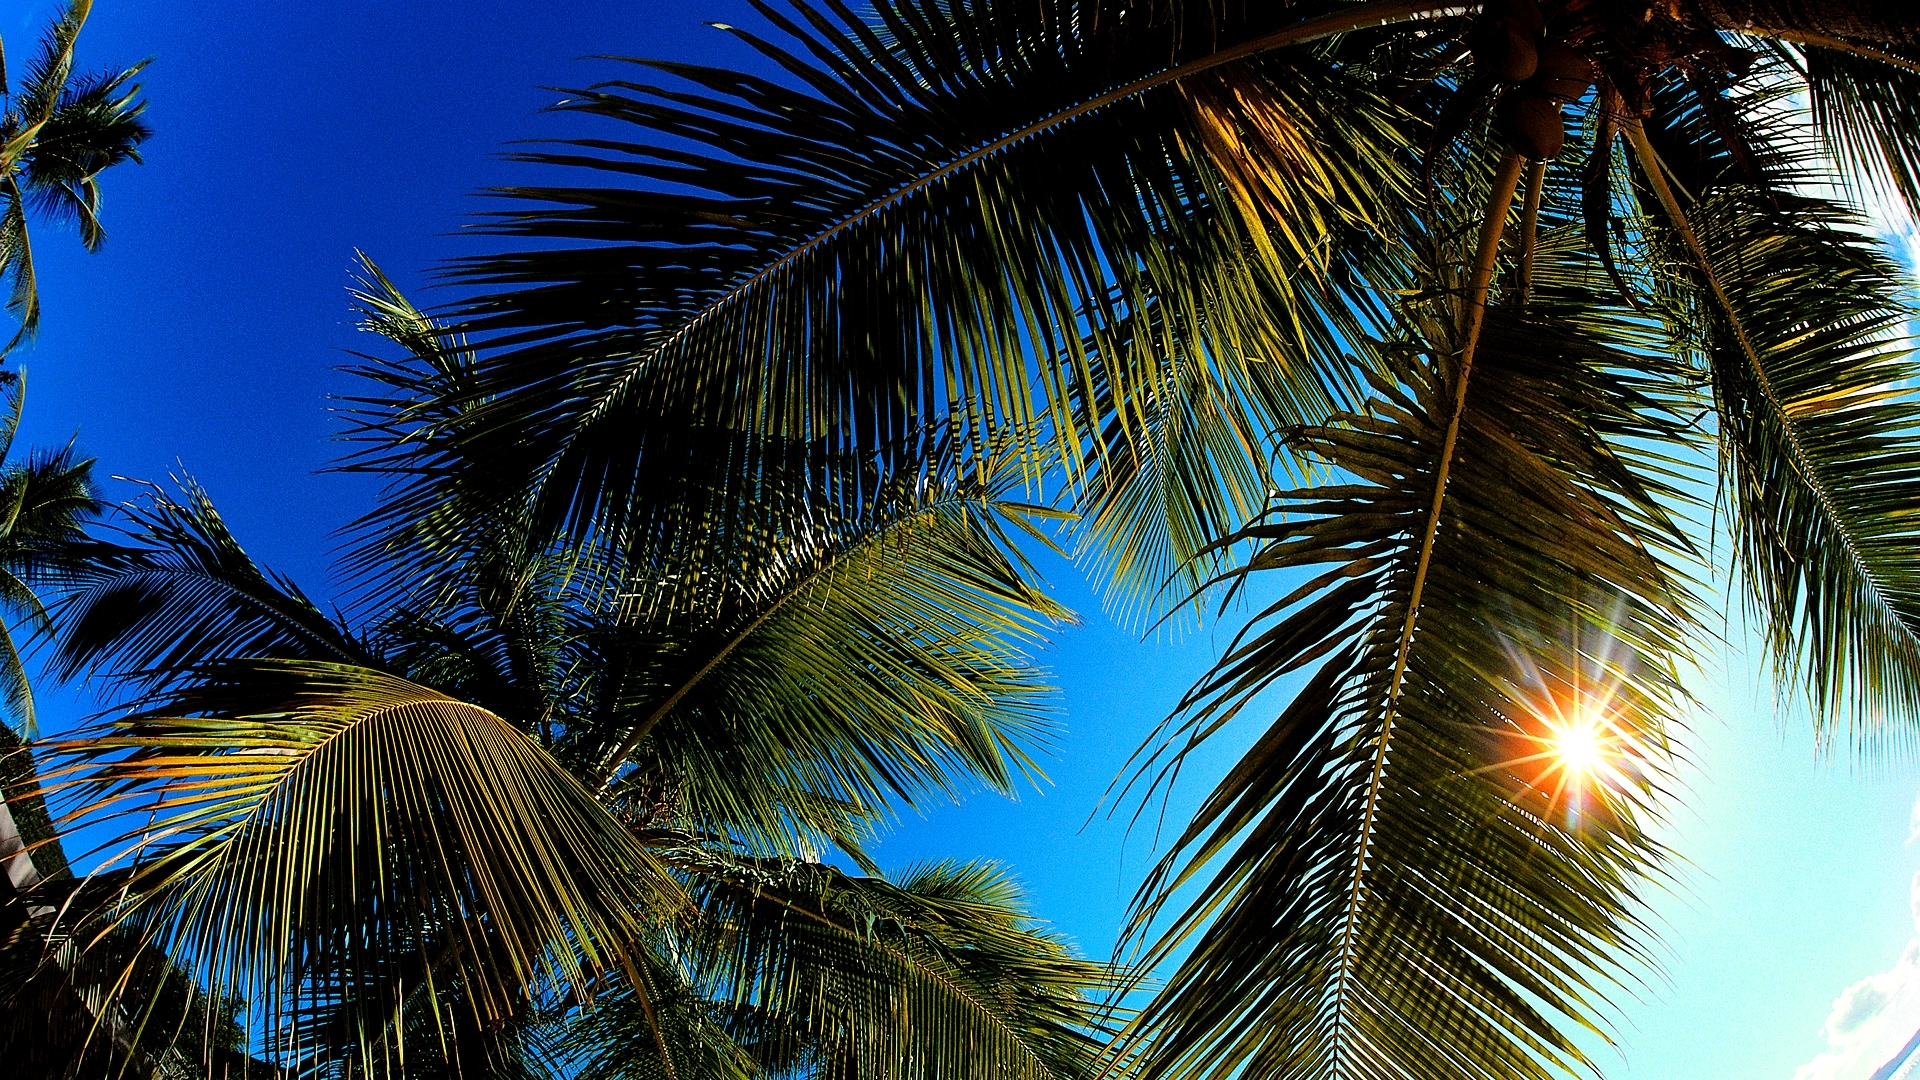 Cute Palm Tree Wallpaper 11 Lovely Hd Palm Leaf Wallpapers